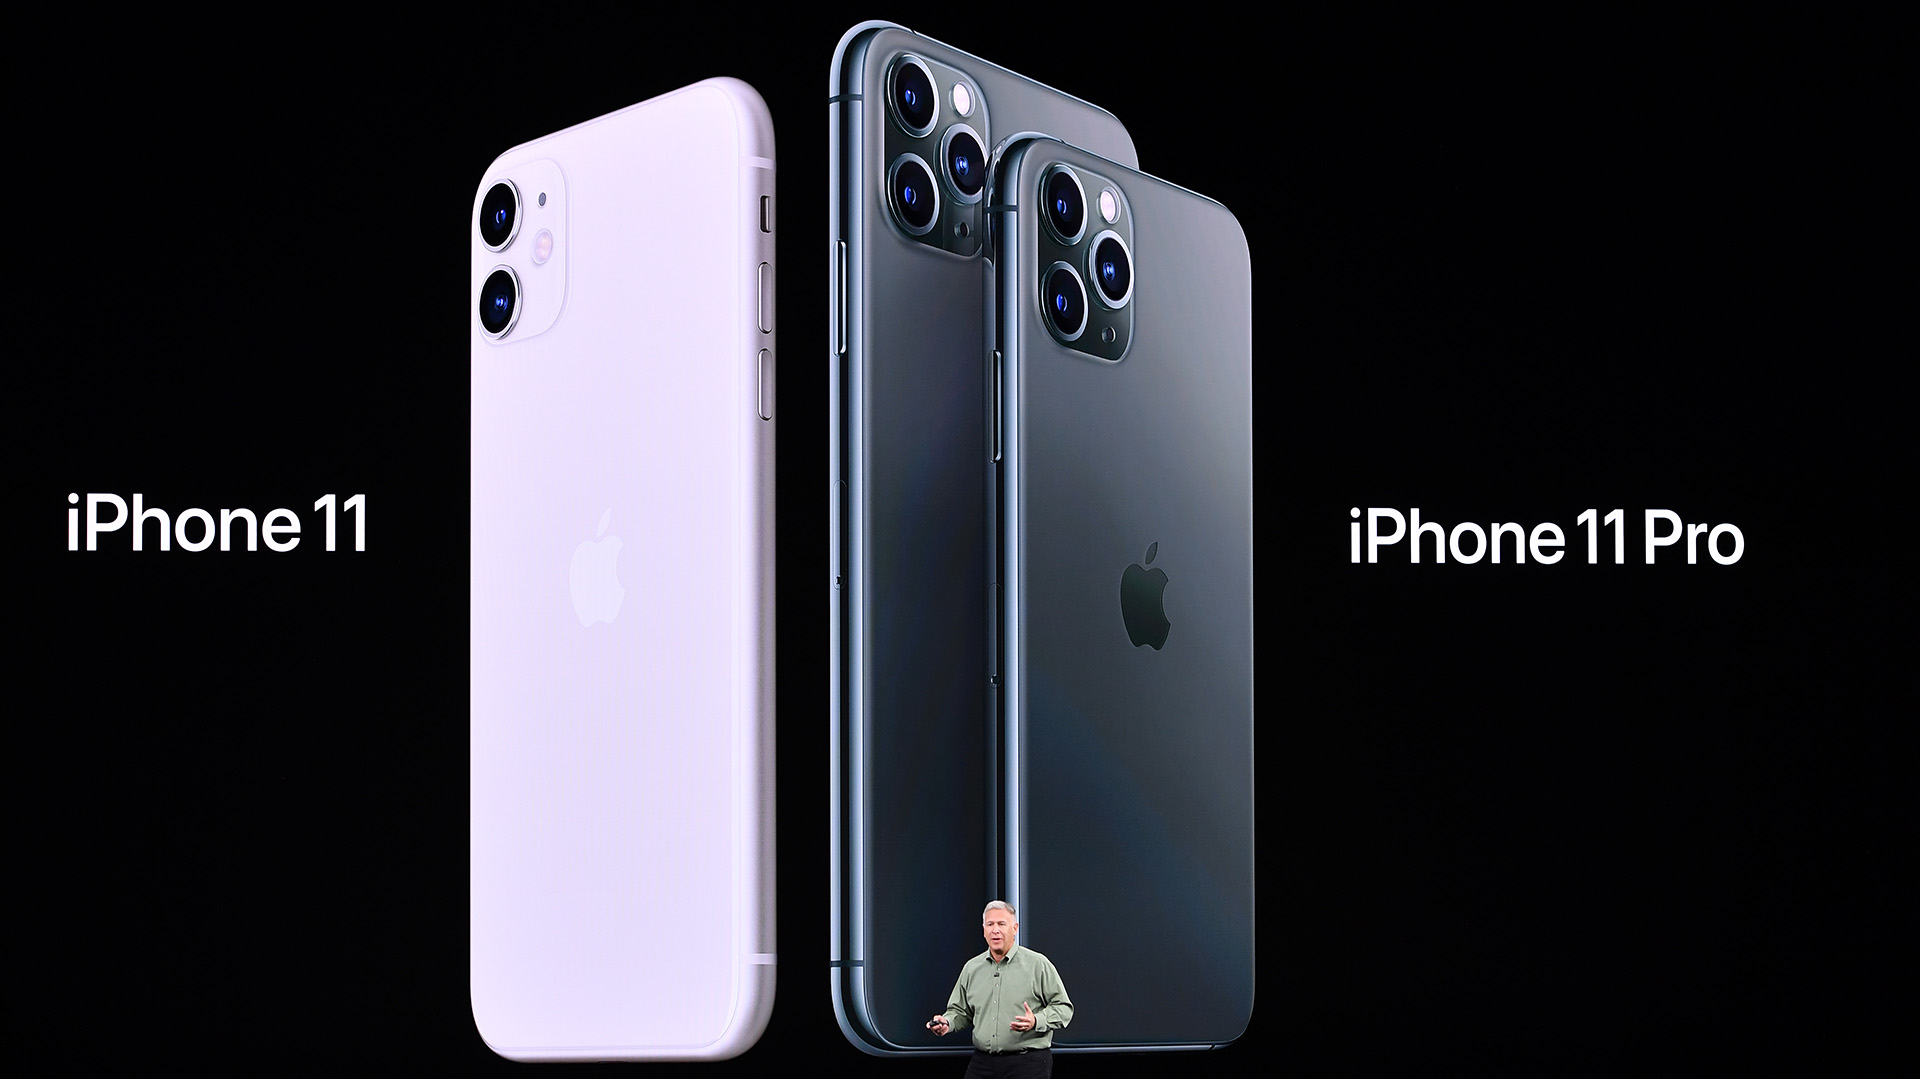 El iPhone 11 se comercializará a partir de los USD 699, el iPhone 11 Pro se venderá desde USD 999 y el iPhone 11 Pro Max, desde USD 1099 (Photo by Josh Edelson / AFP)